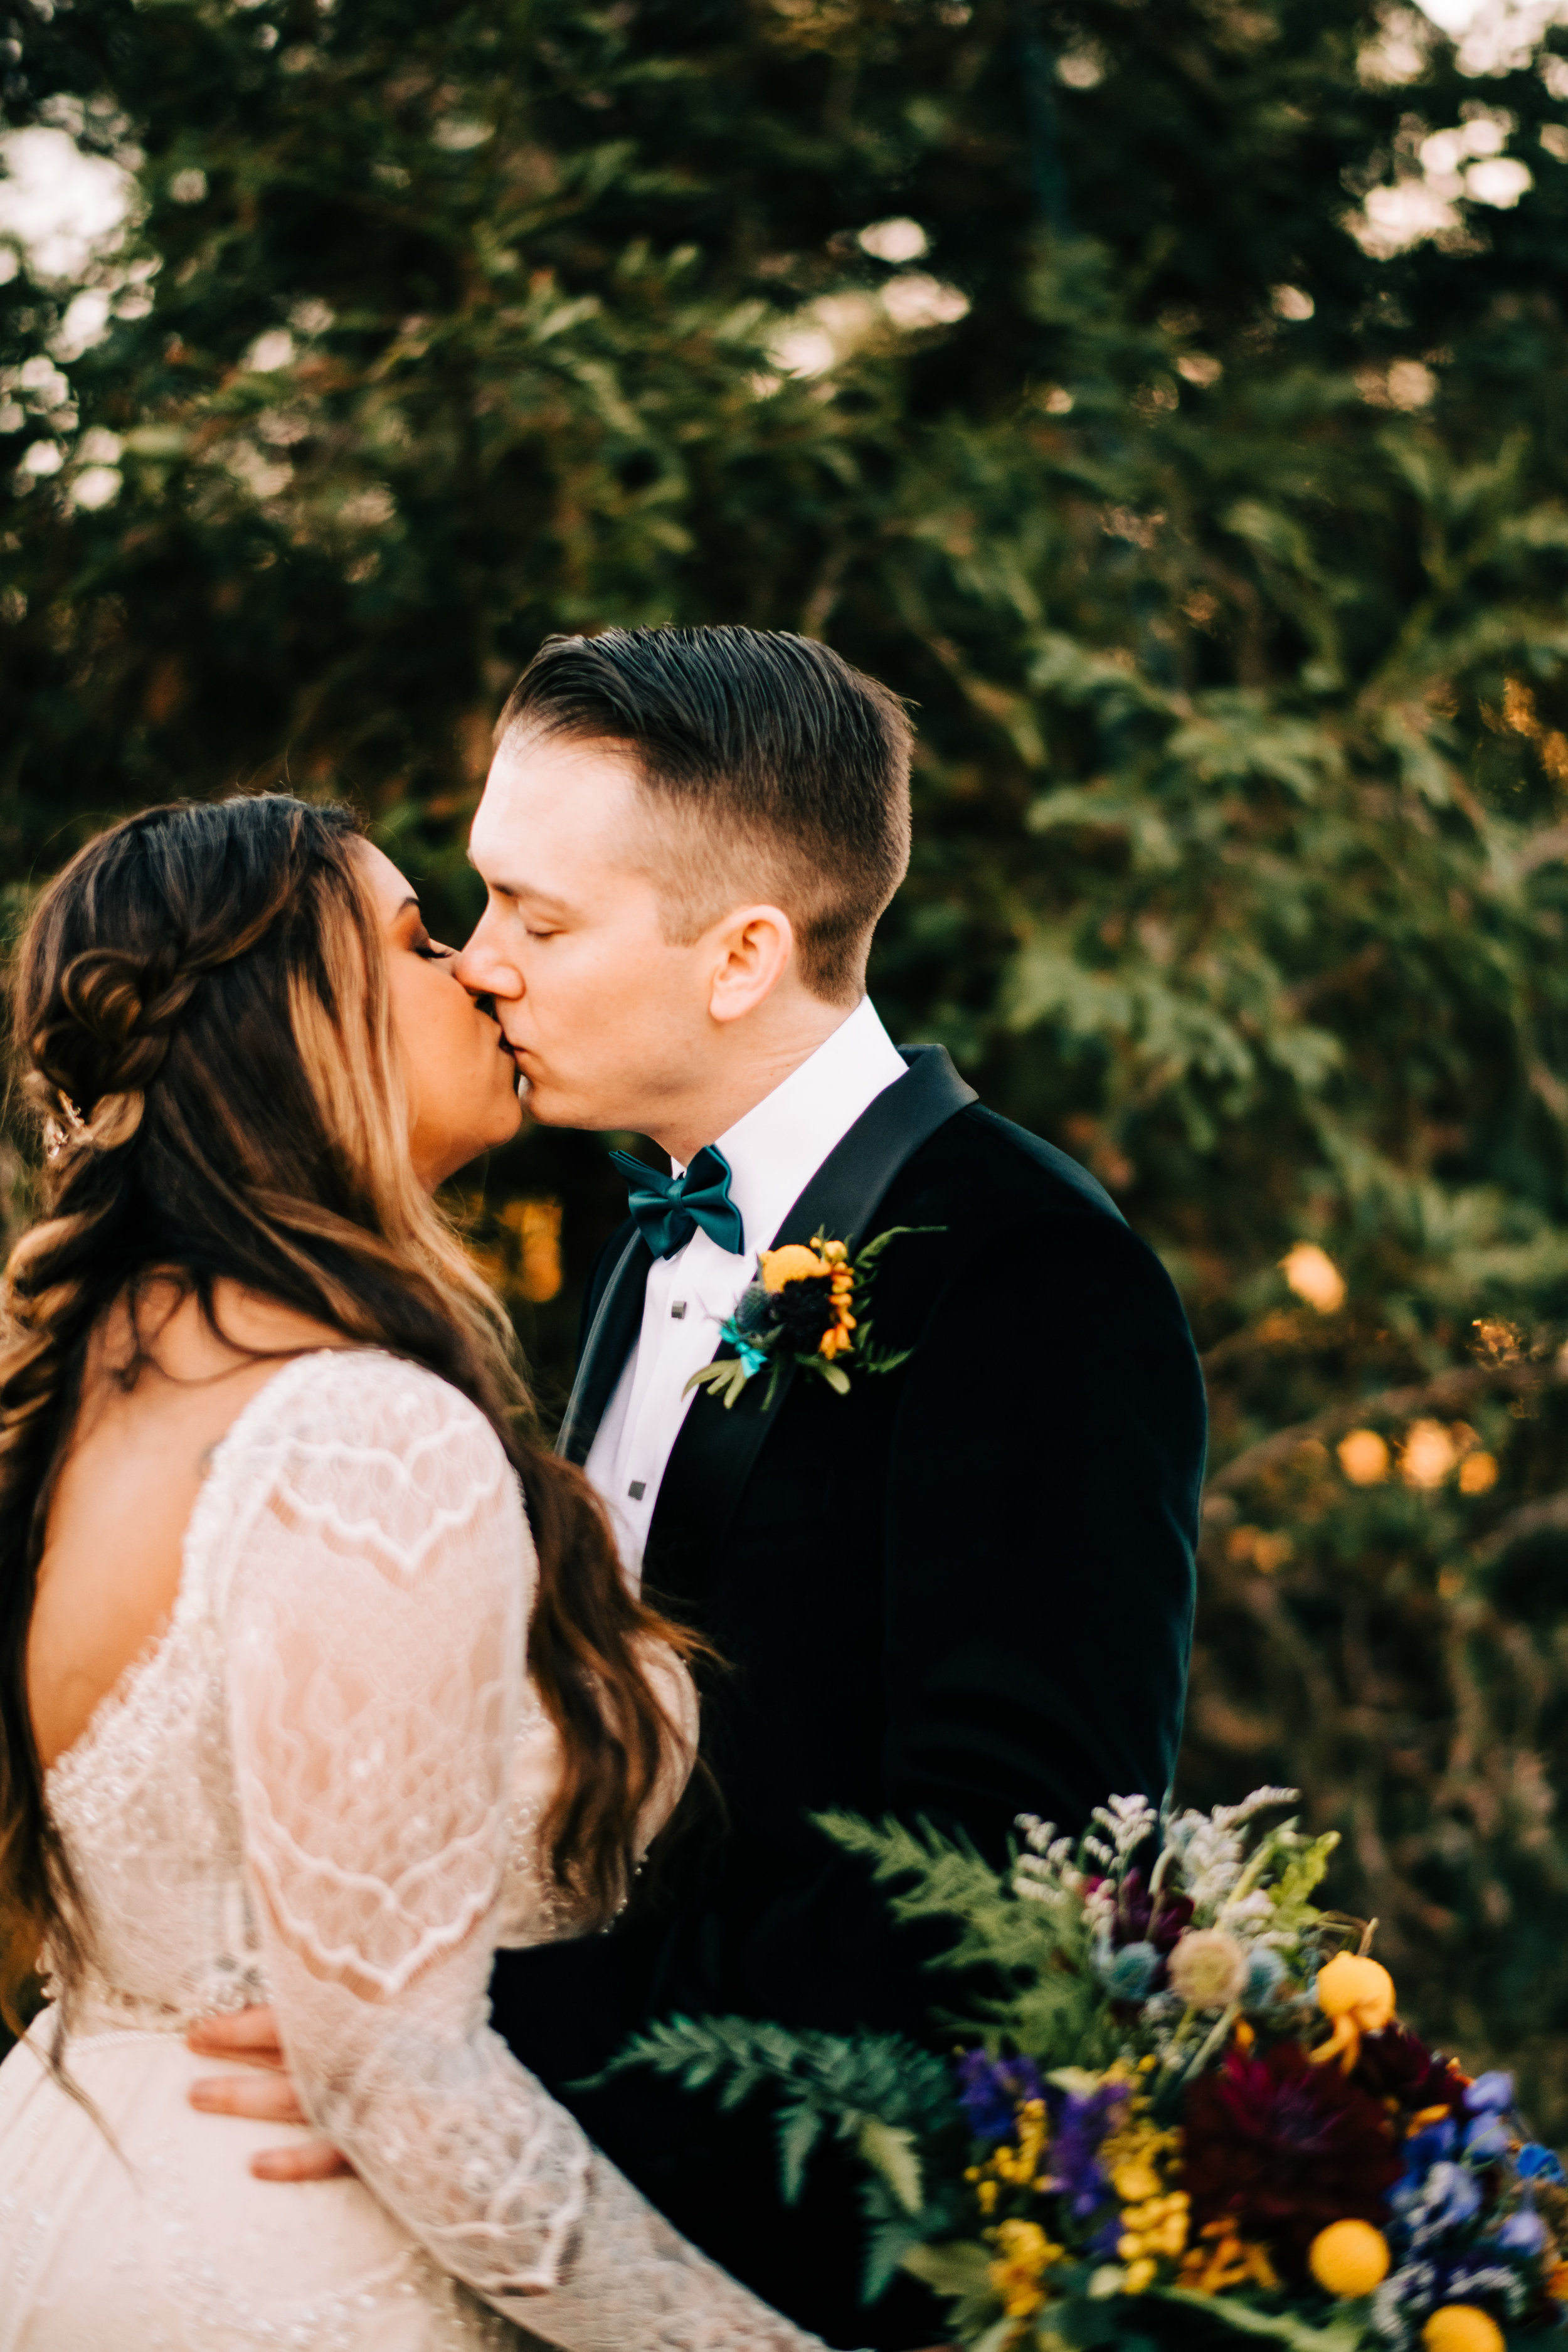 bay area nontraditional wedding photographer southern california boho wedding love light magic san francisco oakland northern california-854.jpg